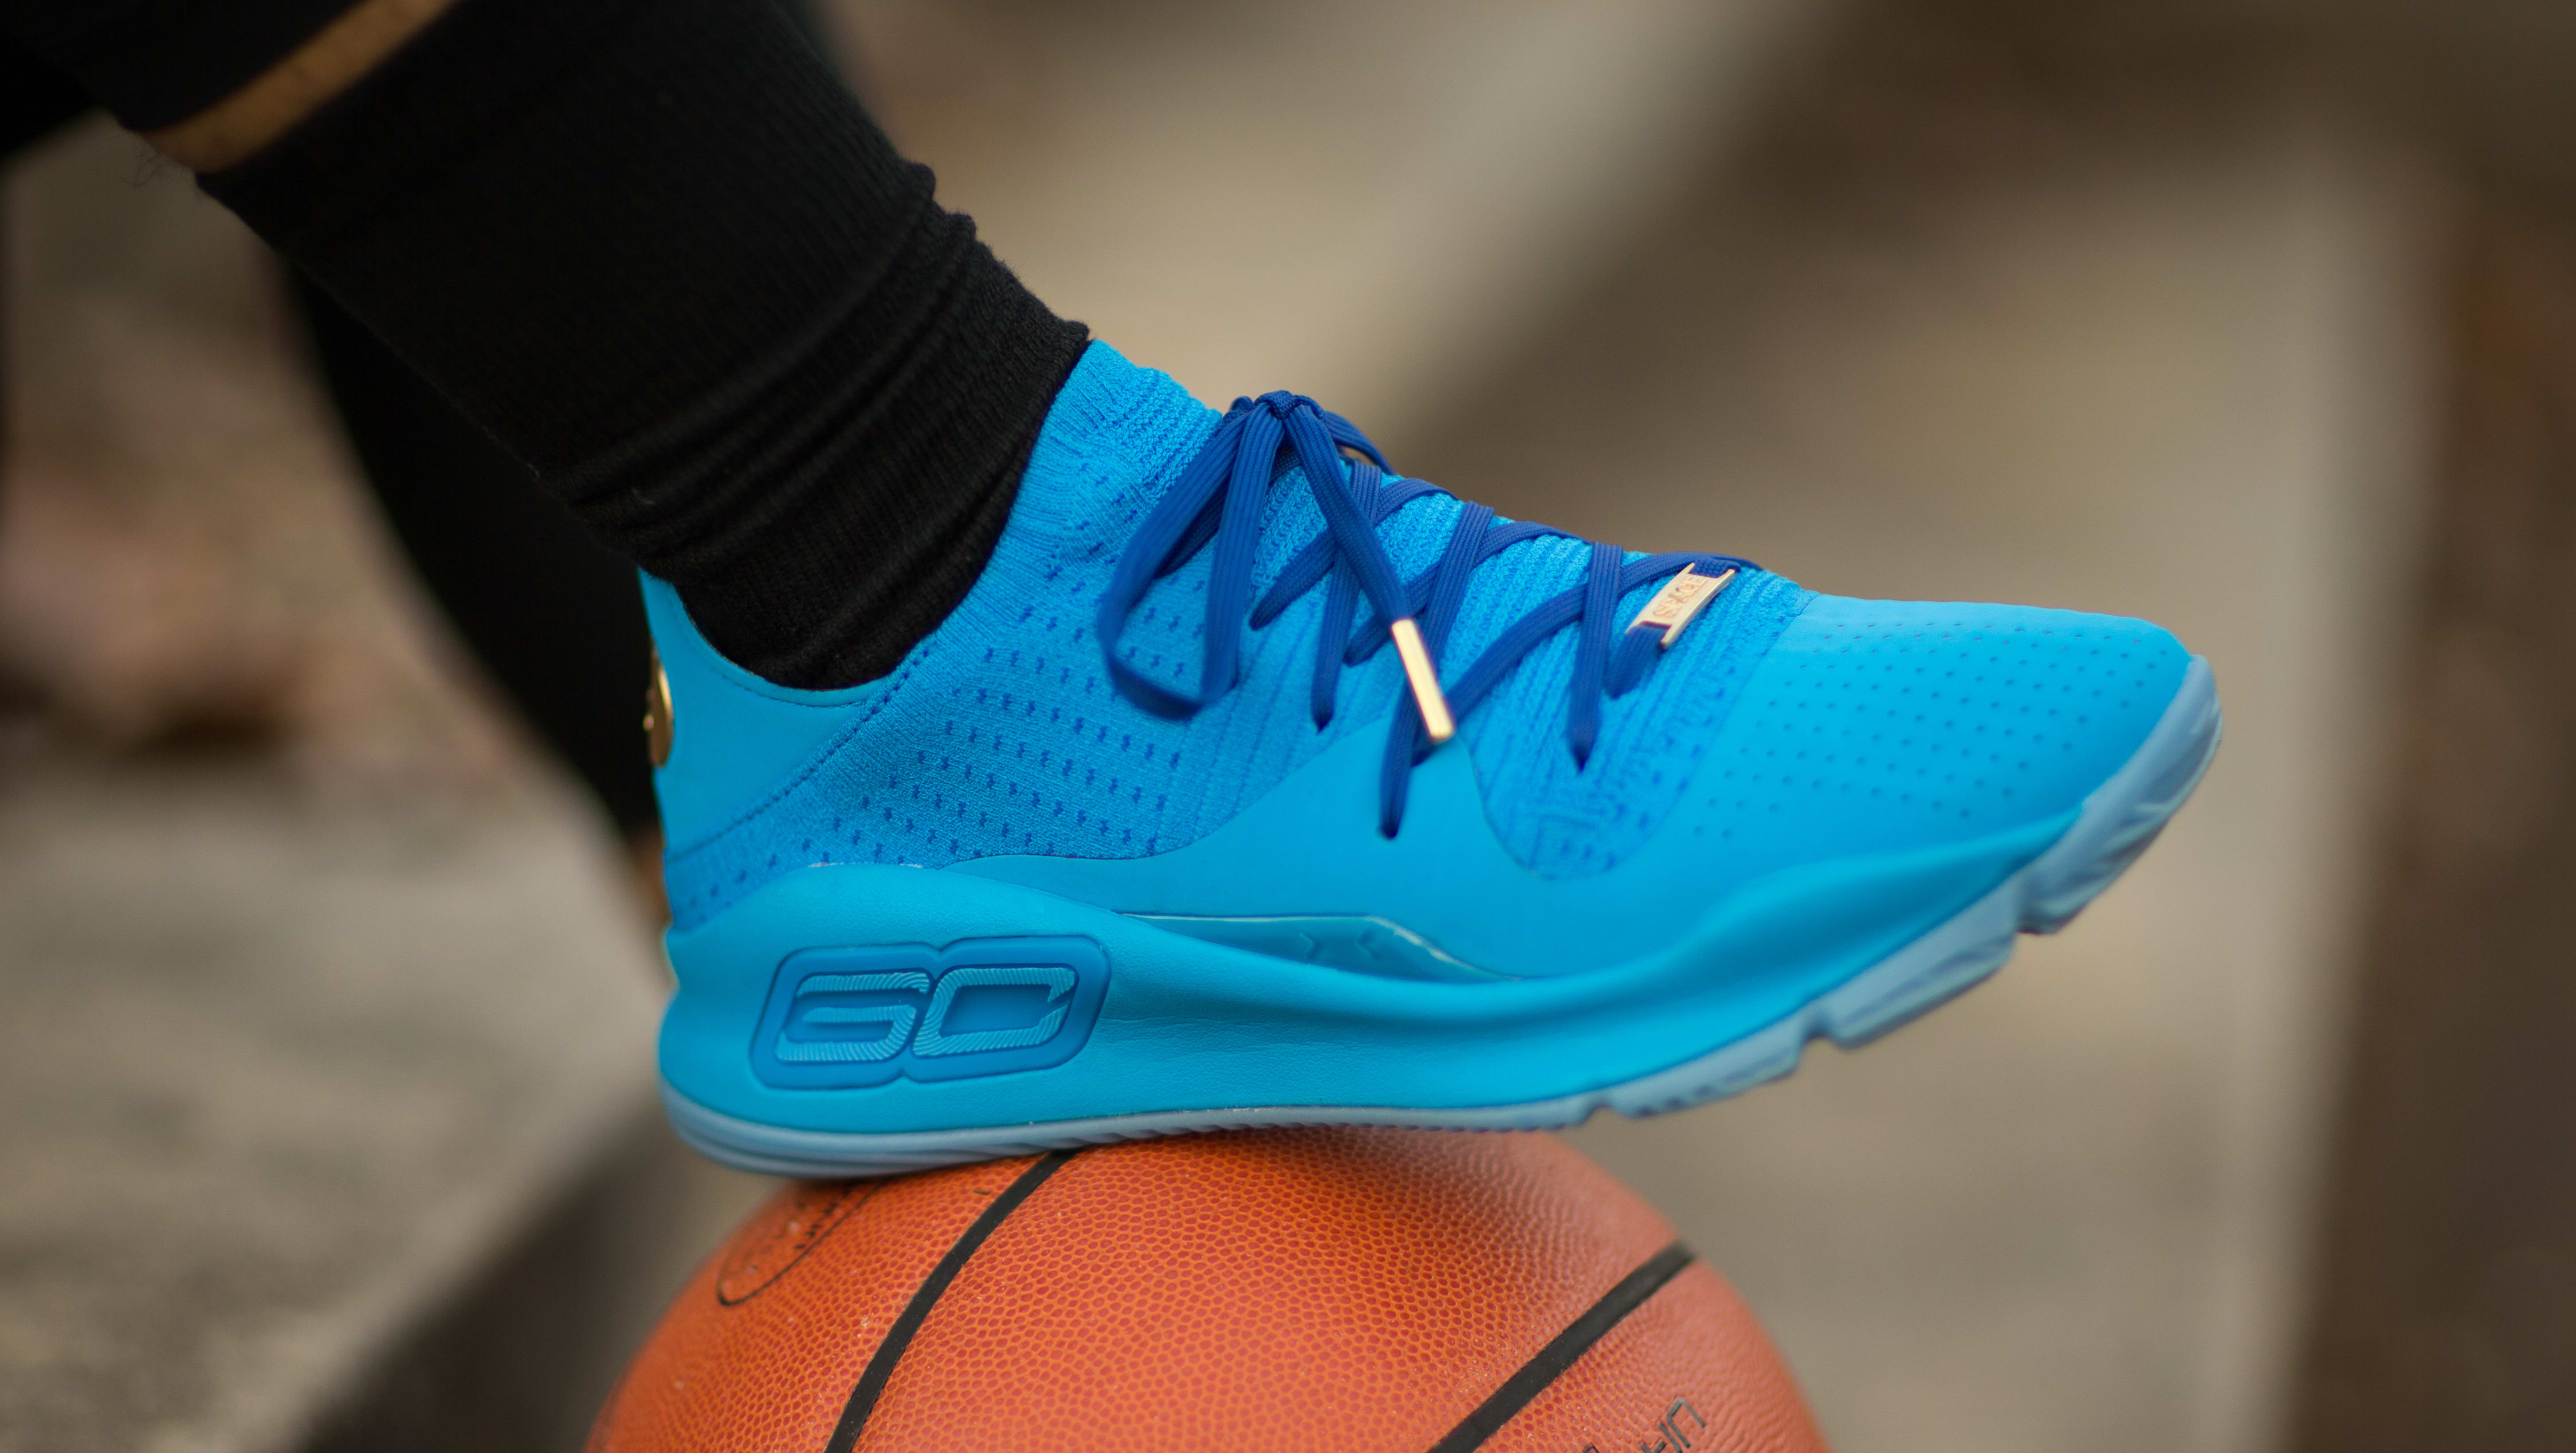 Under Armour Curry 4 Low 'Blue'